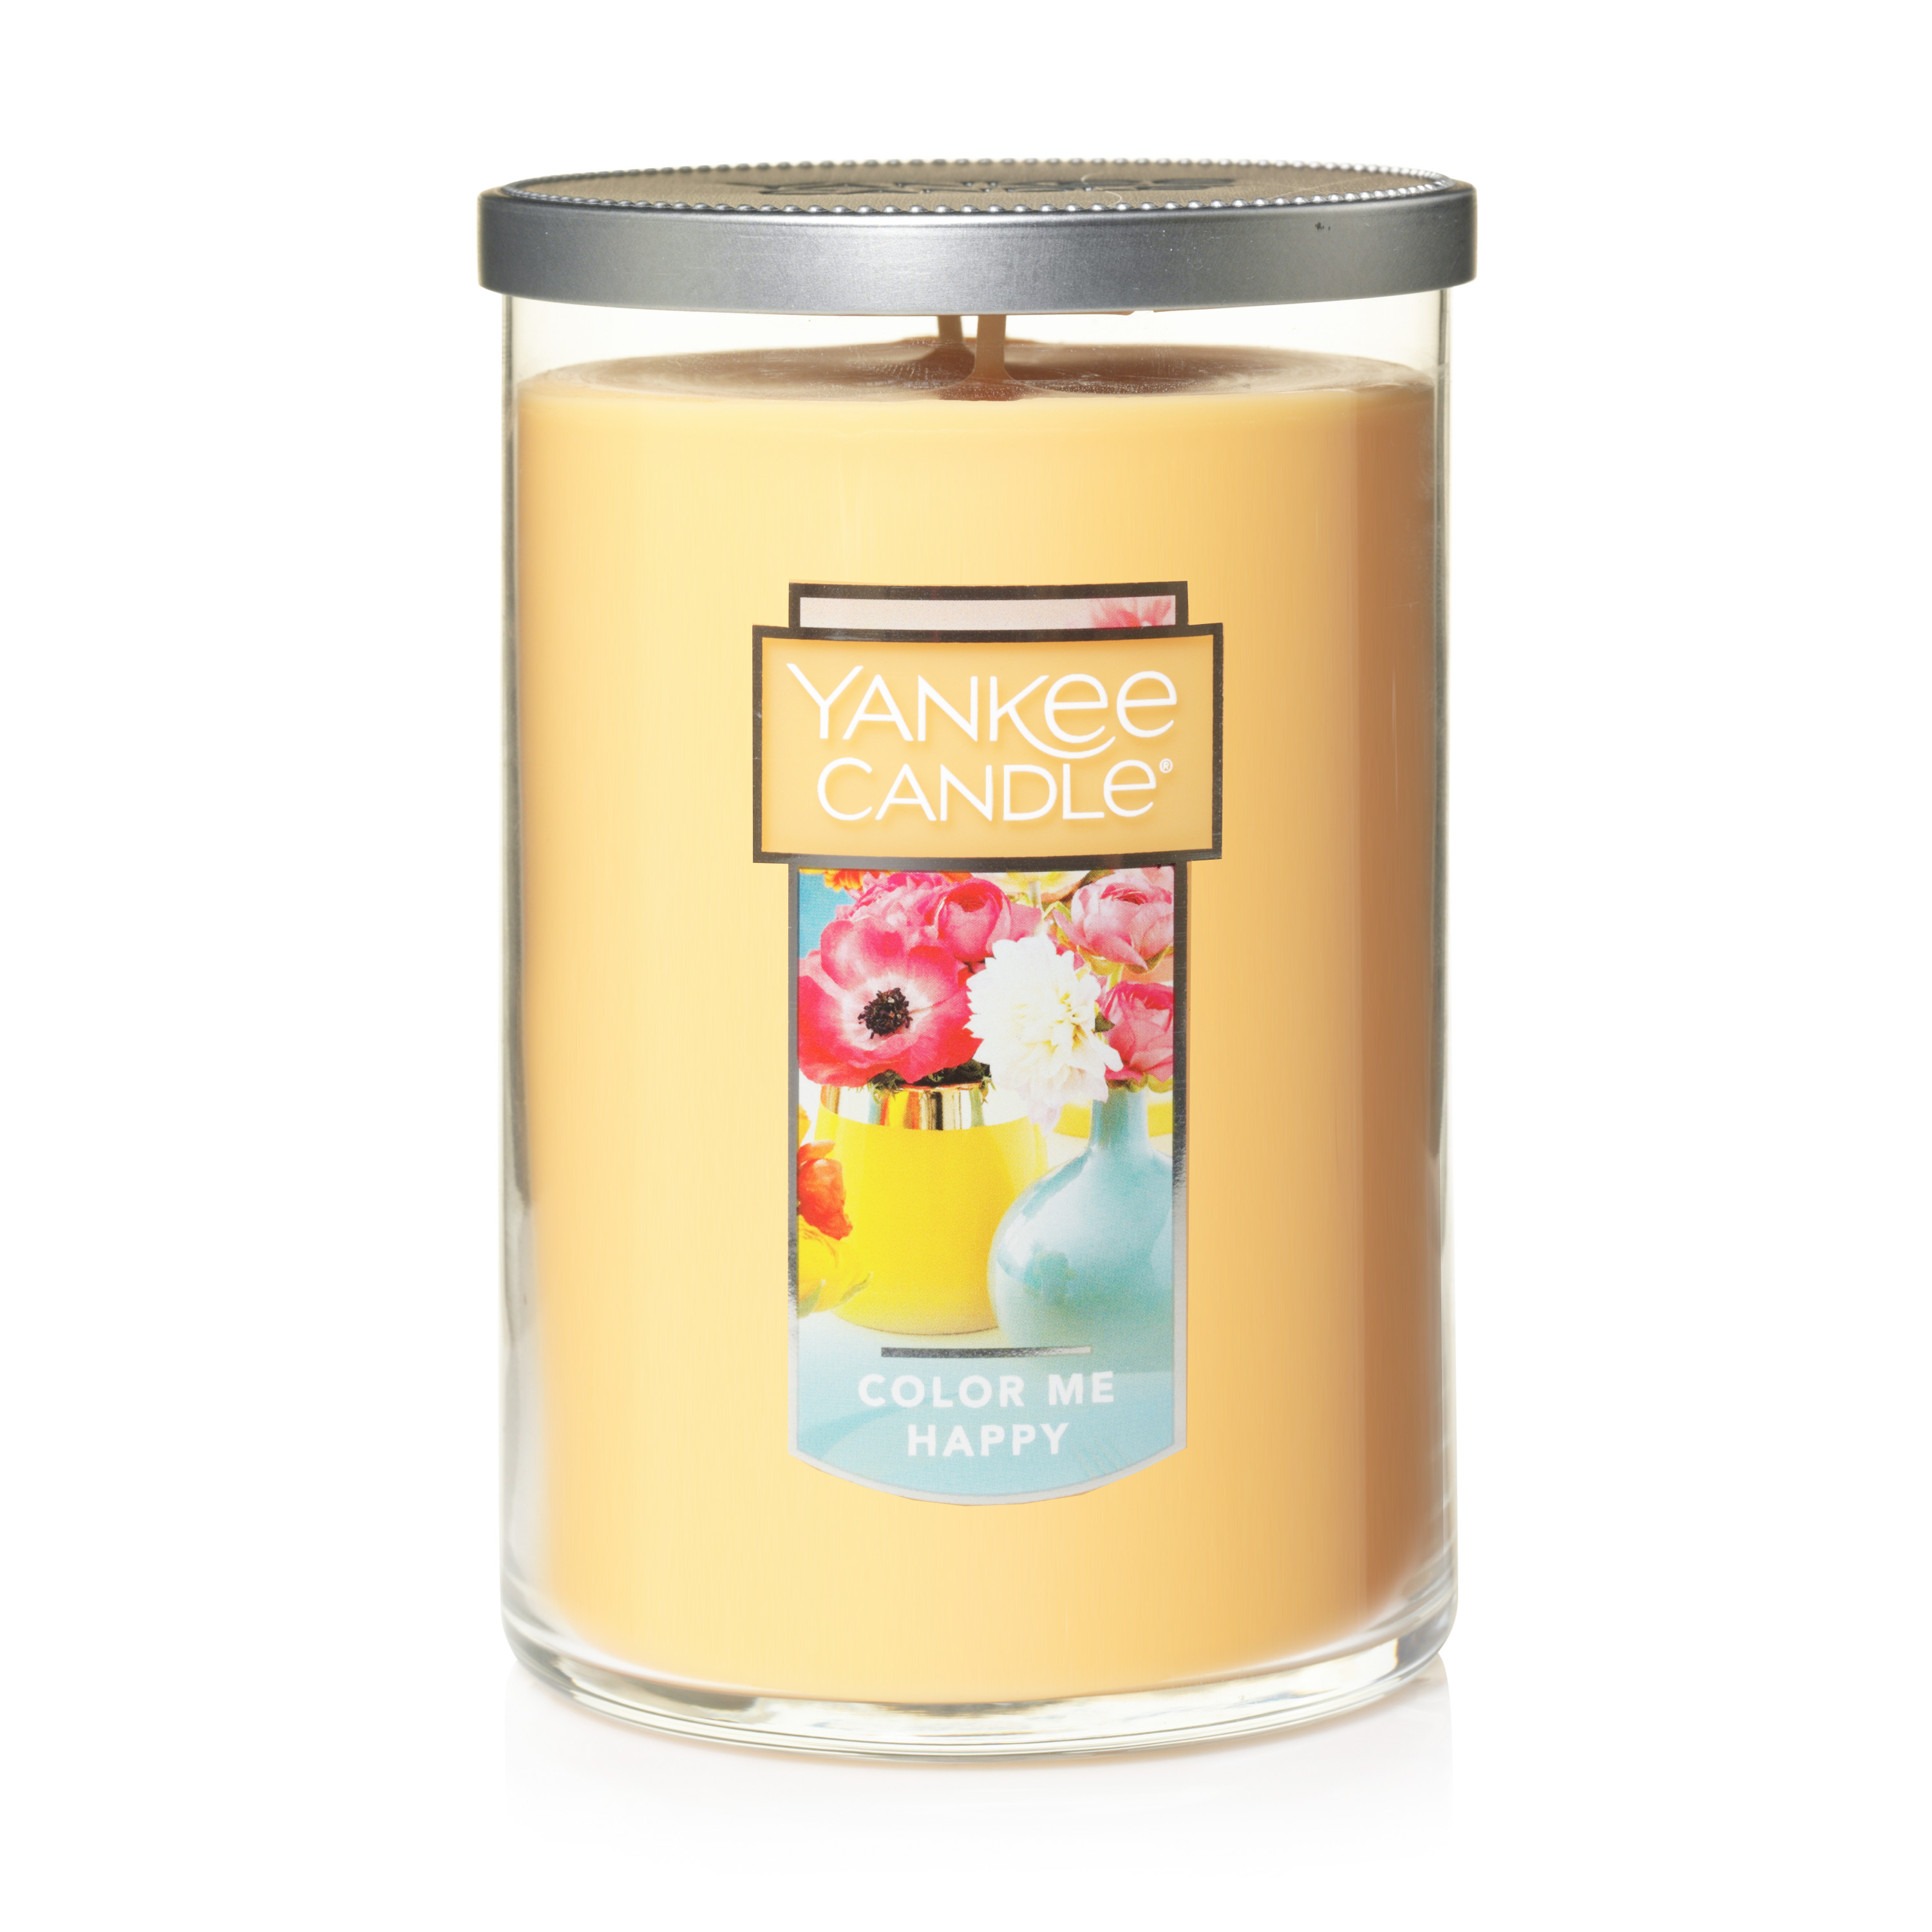 Yankee Candle Large 2-Wick Tumbler Scented Candle, Color Me Happy